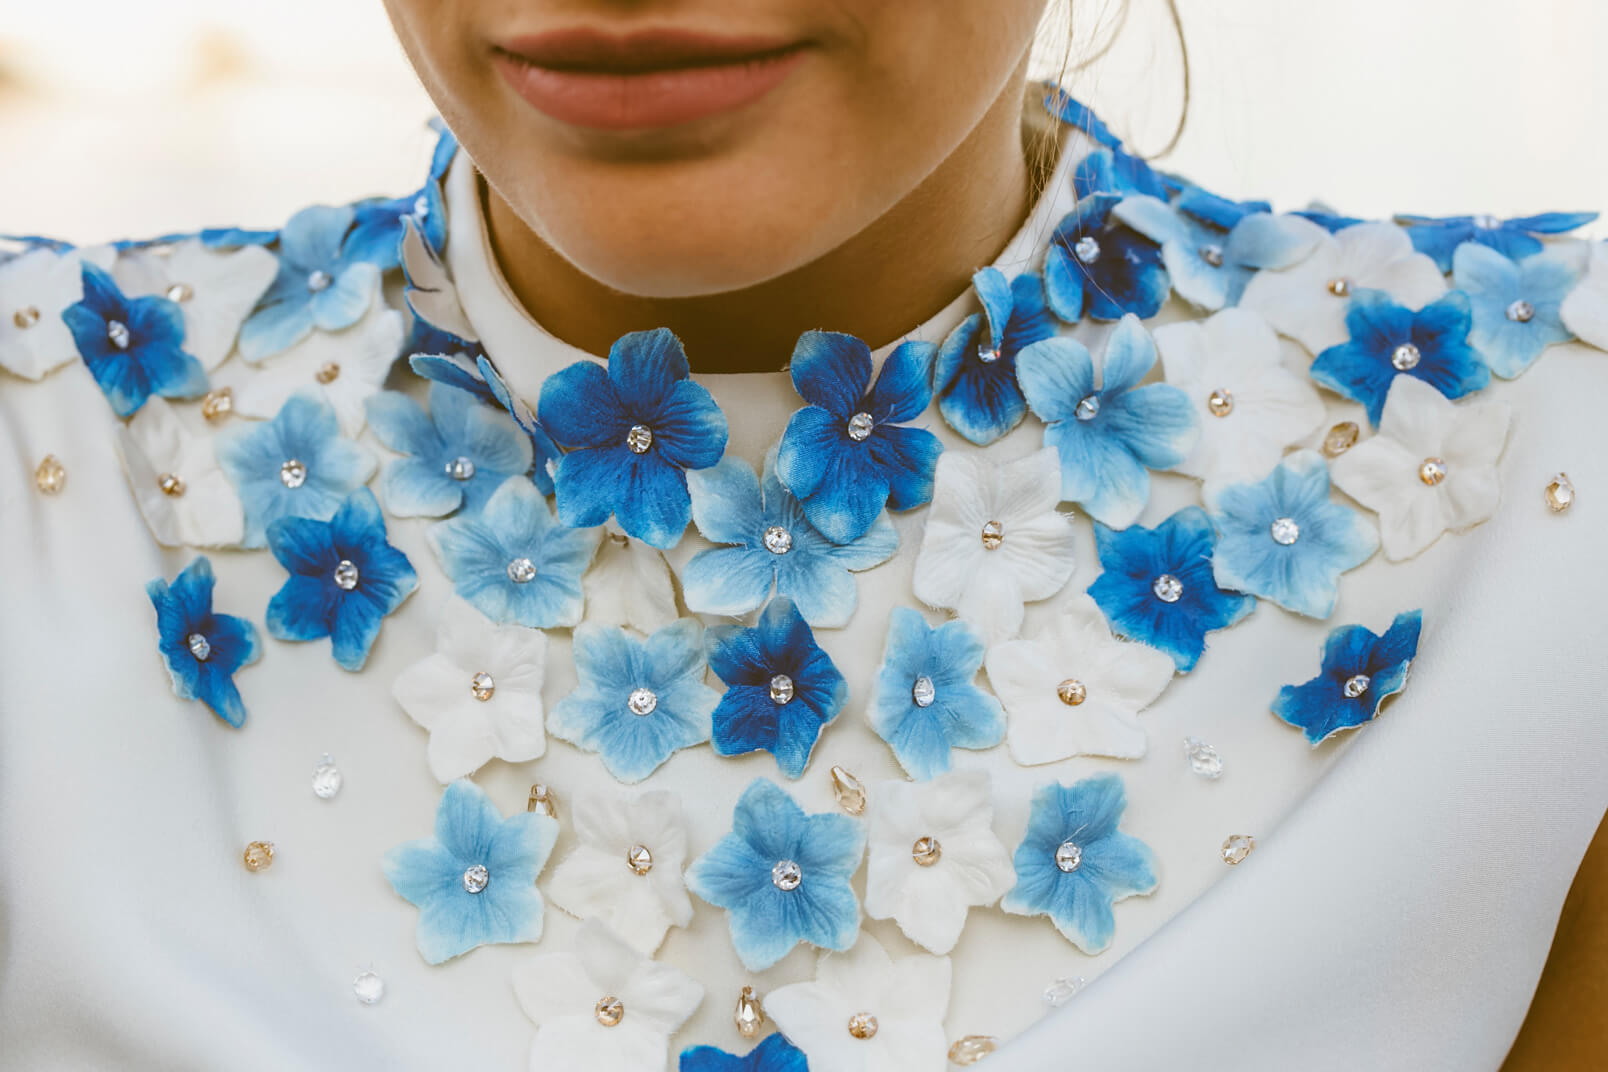 Detail of a bridesmaid's dress in 1960s style by Gretel Z.: the blue flowers